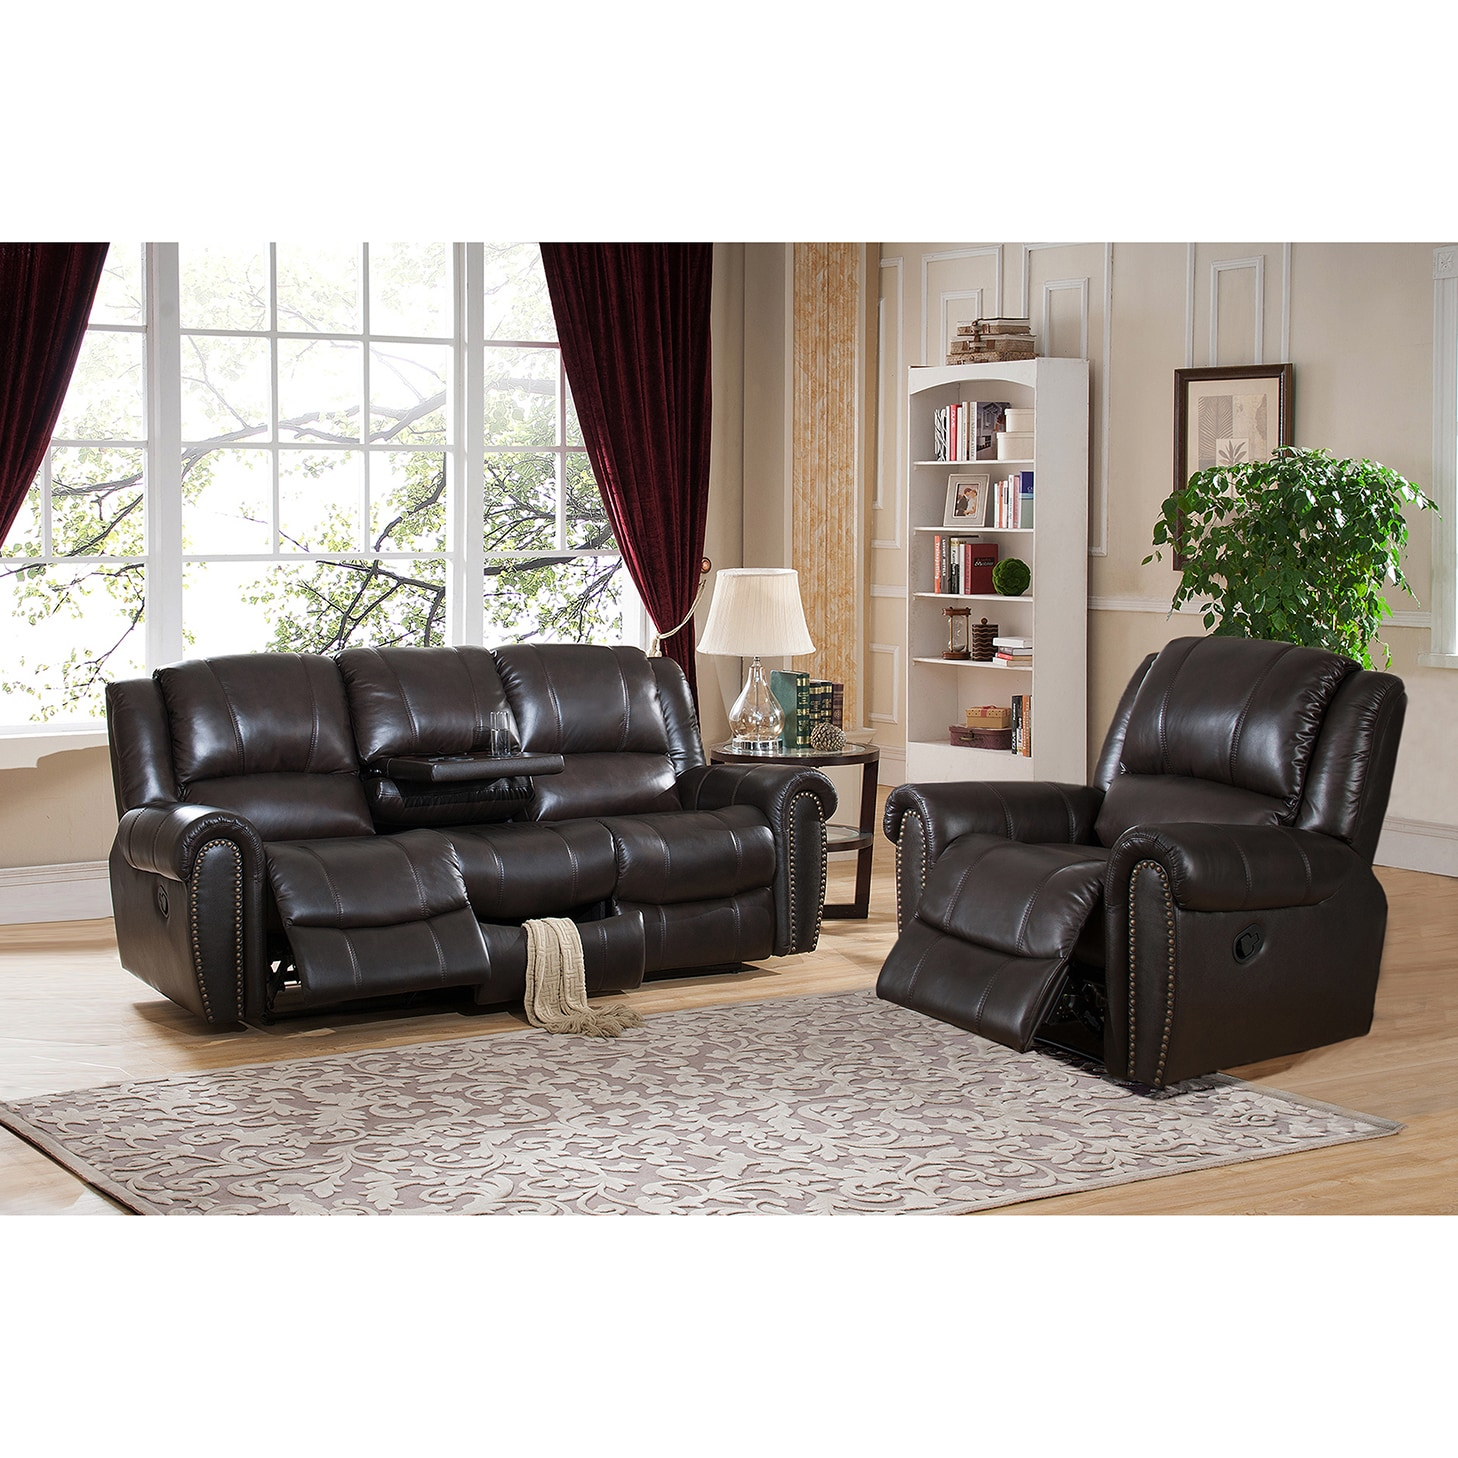 Amax Engineering Charlotte Top Grain Leather Reclining So...